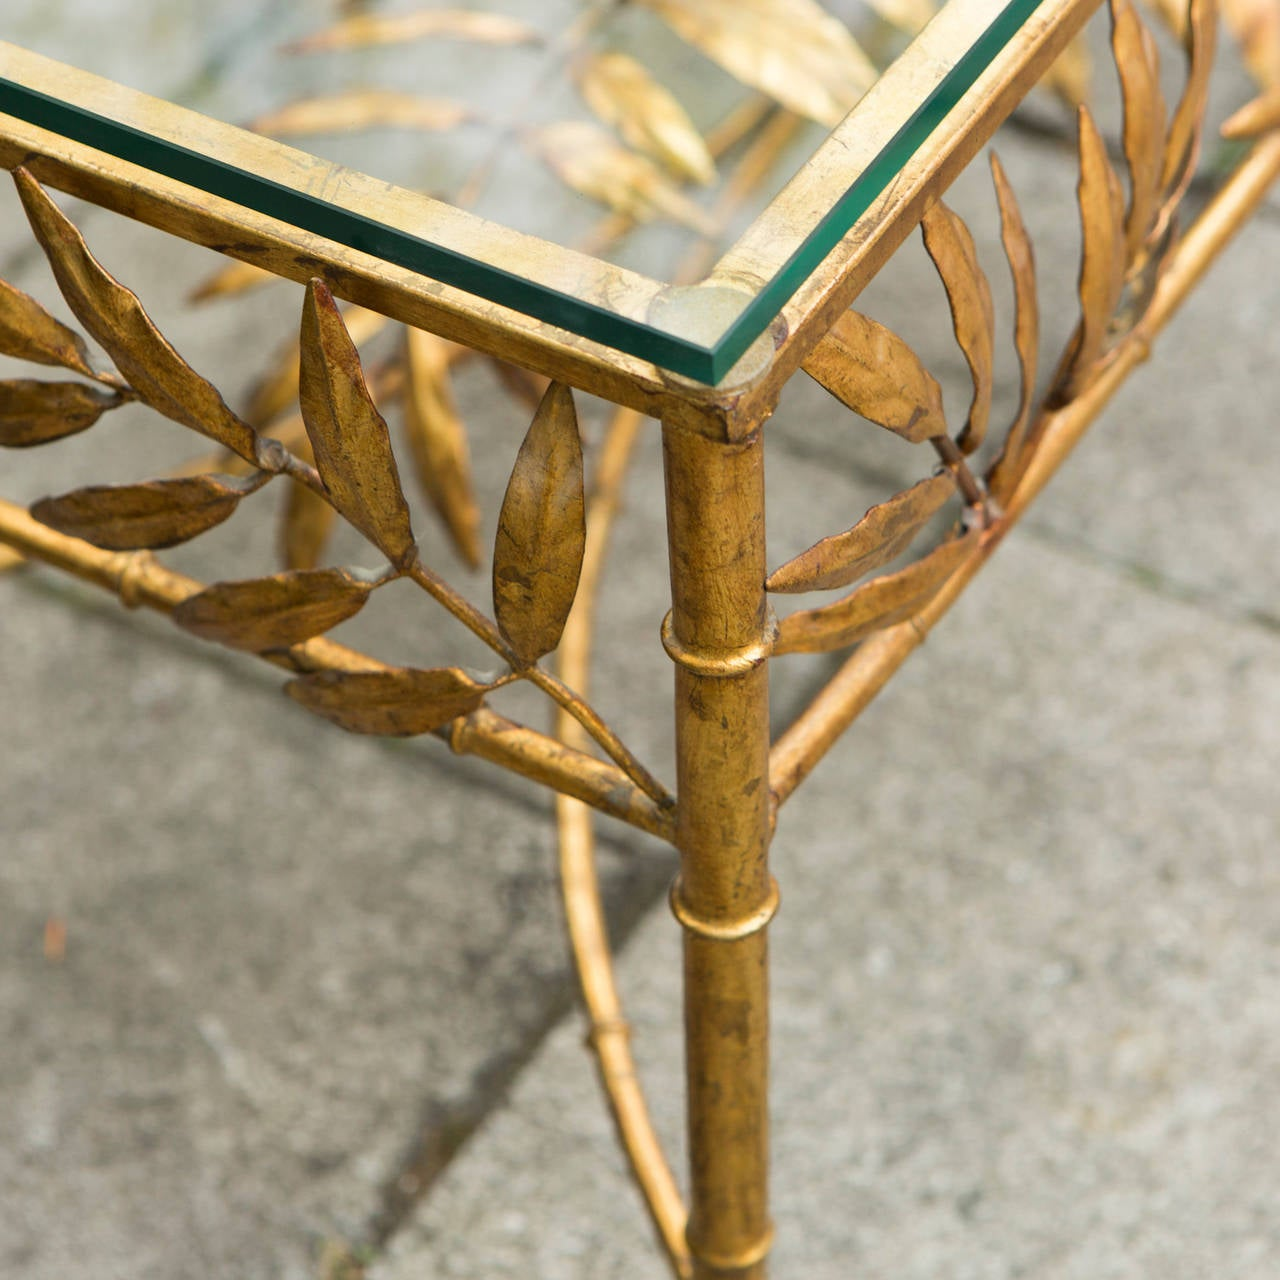 French Gold Coffee Table: French Gold Plated Faux Bamboo Coffee Table At 1stdibs